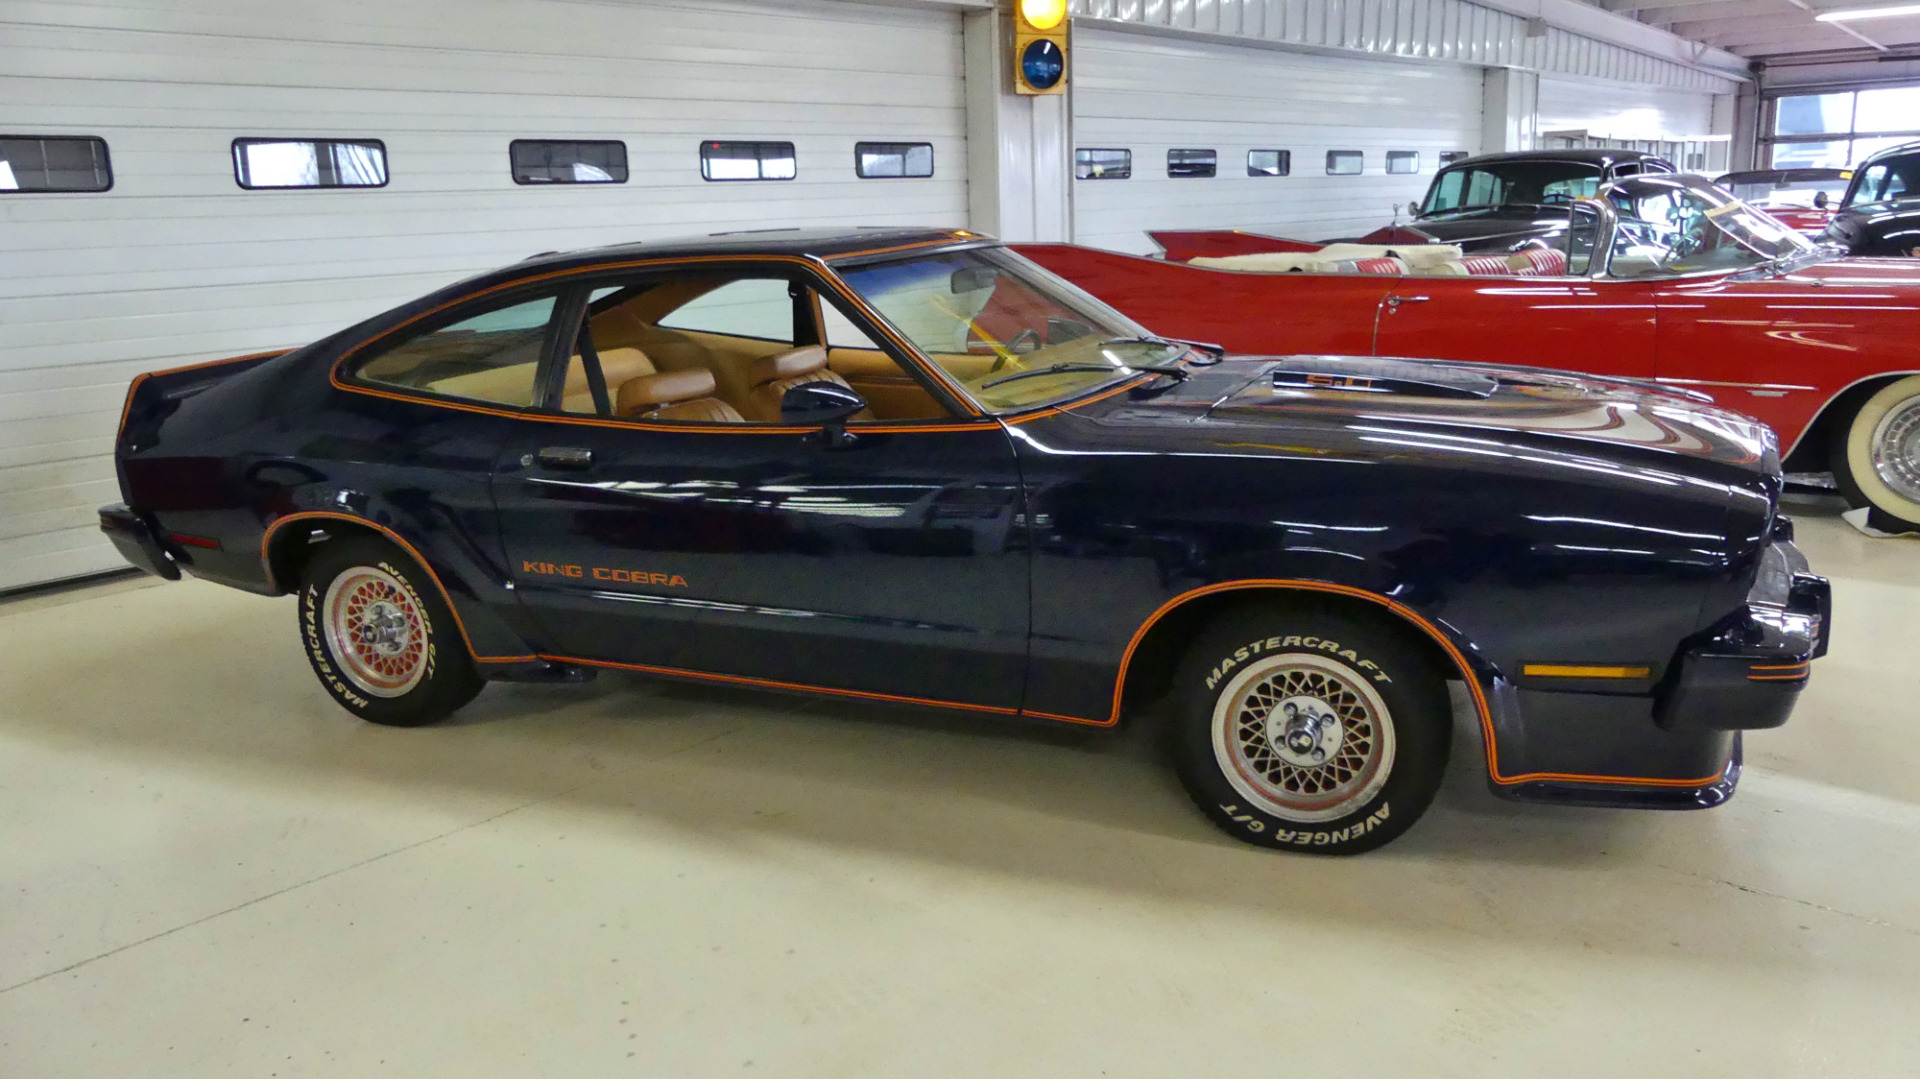 Classic Cars for Sale Near Me Cheap Unique 1978 ford Mustang King Cobra Stock for Sale Near Columbus